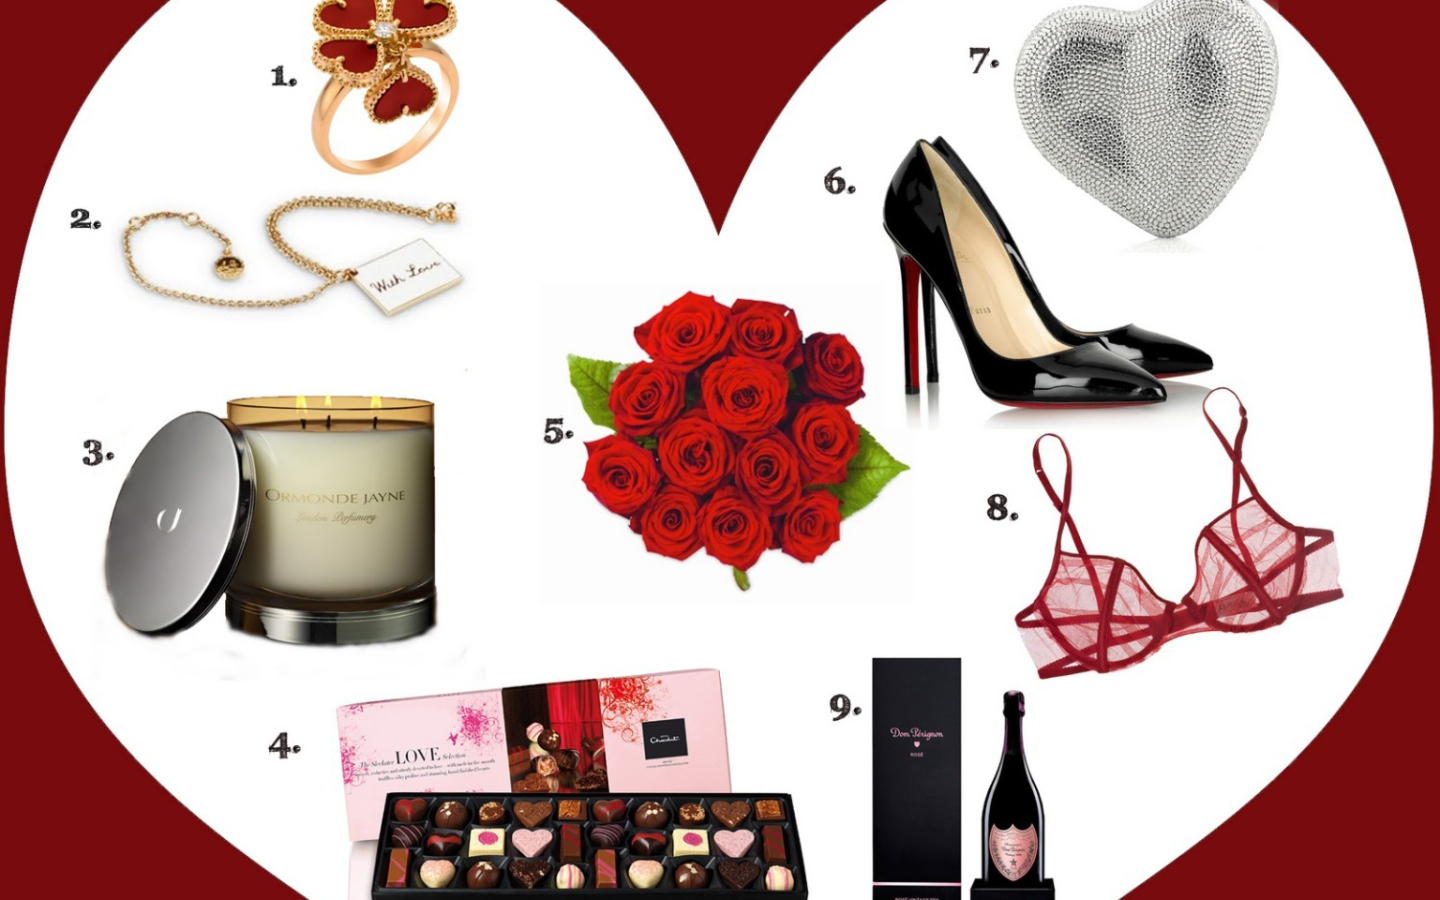 Valentines Day Gifts wallpaper 1440x900